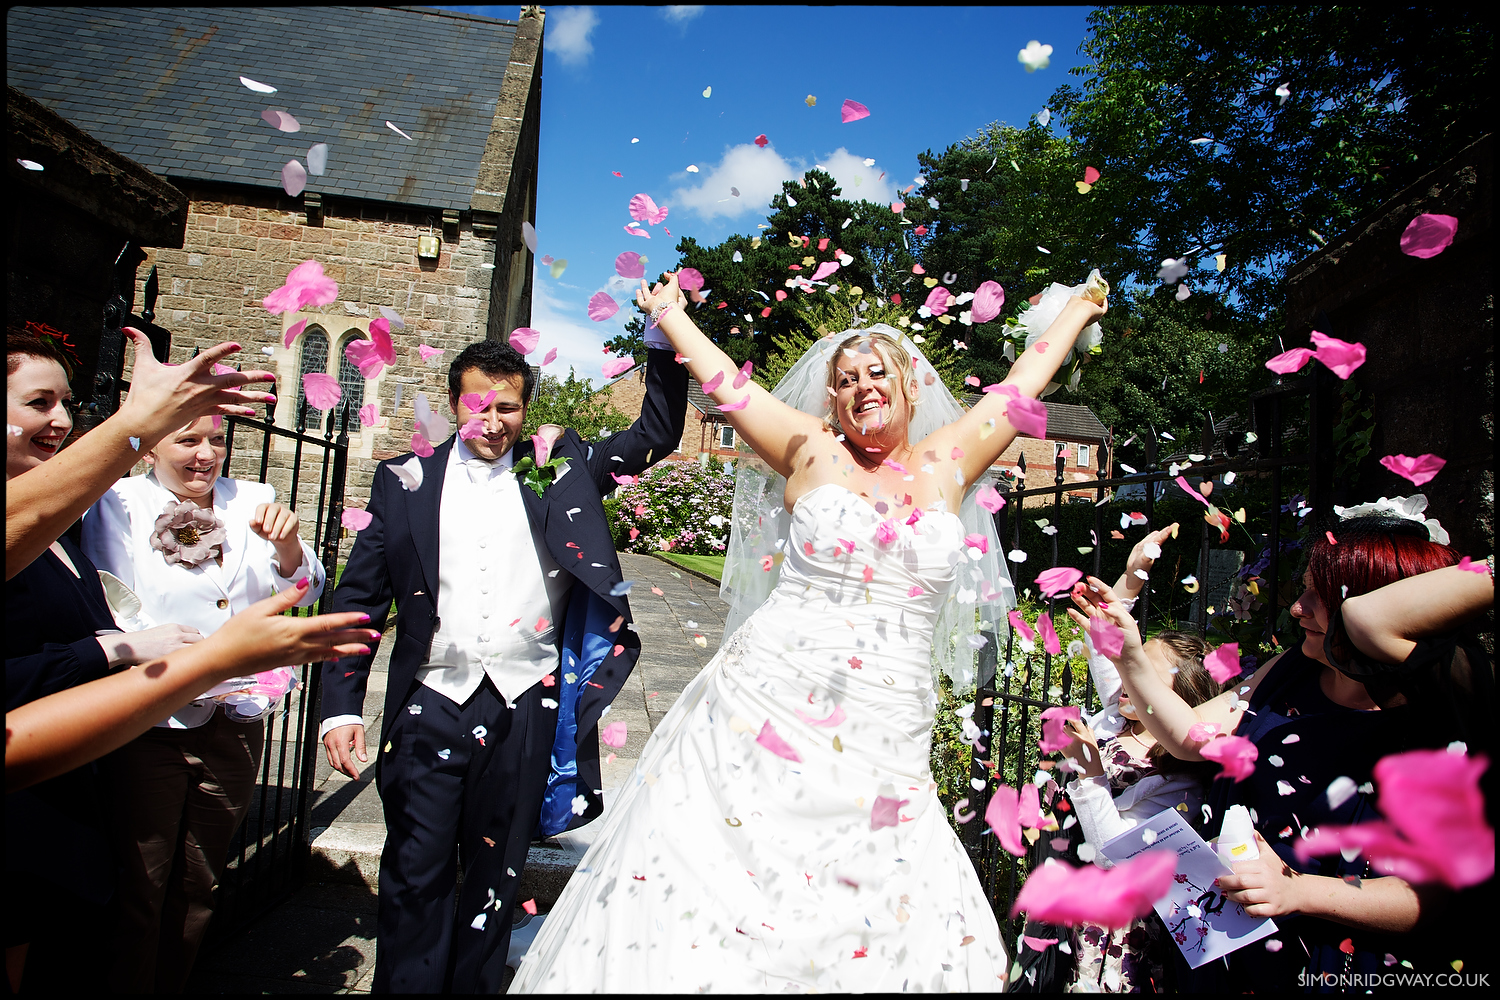 Reportage Wedding Photography in Wales